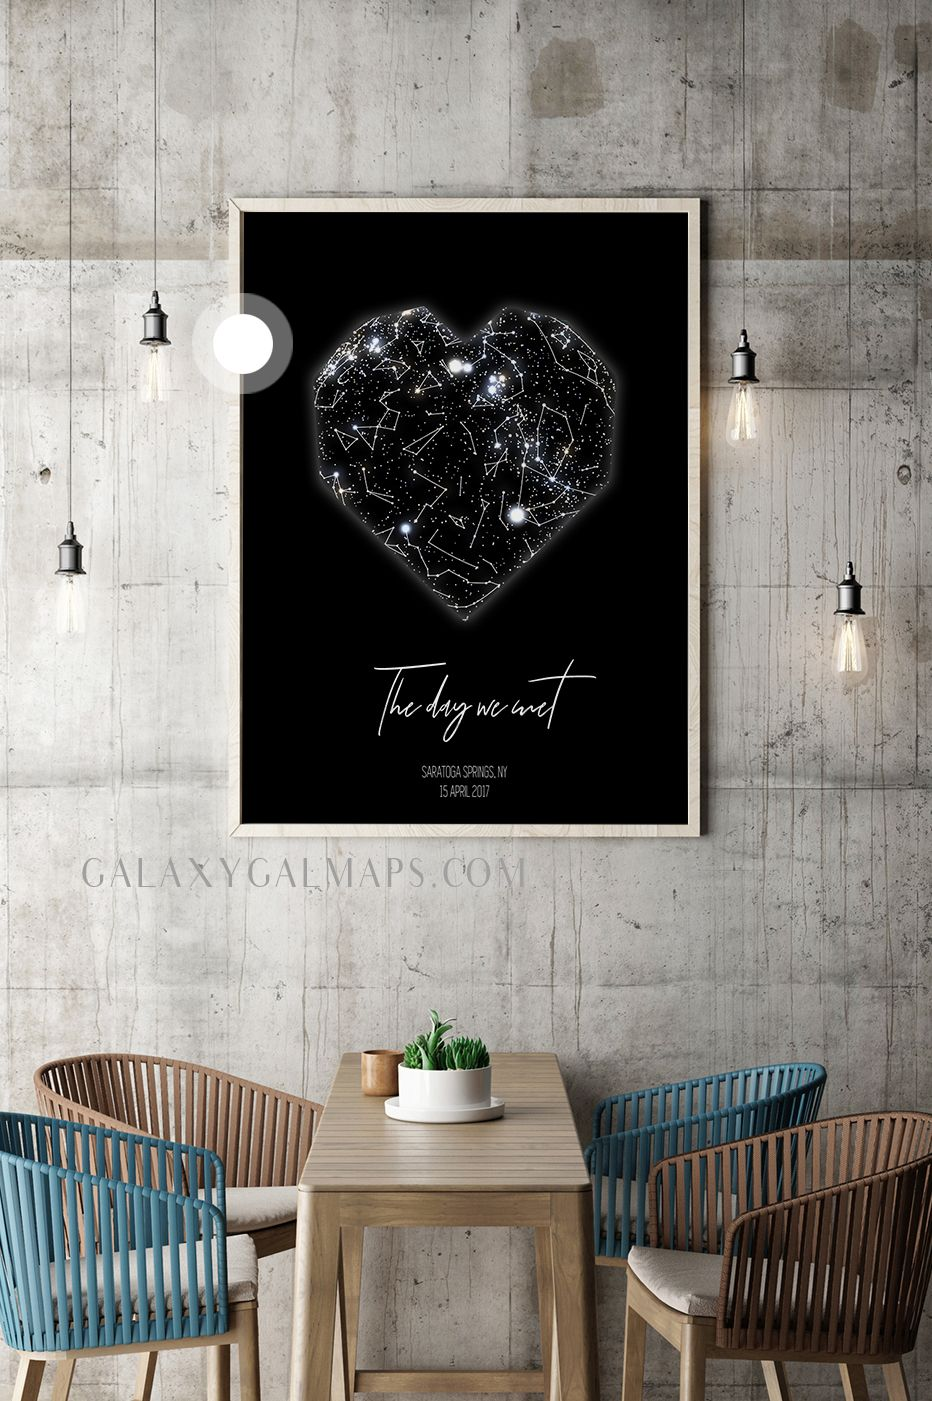 Unique sky map for your date star print wall art ship black and white acrylic painting farmhouse decor flying cranes also rh pinterest